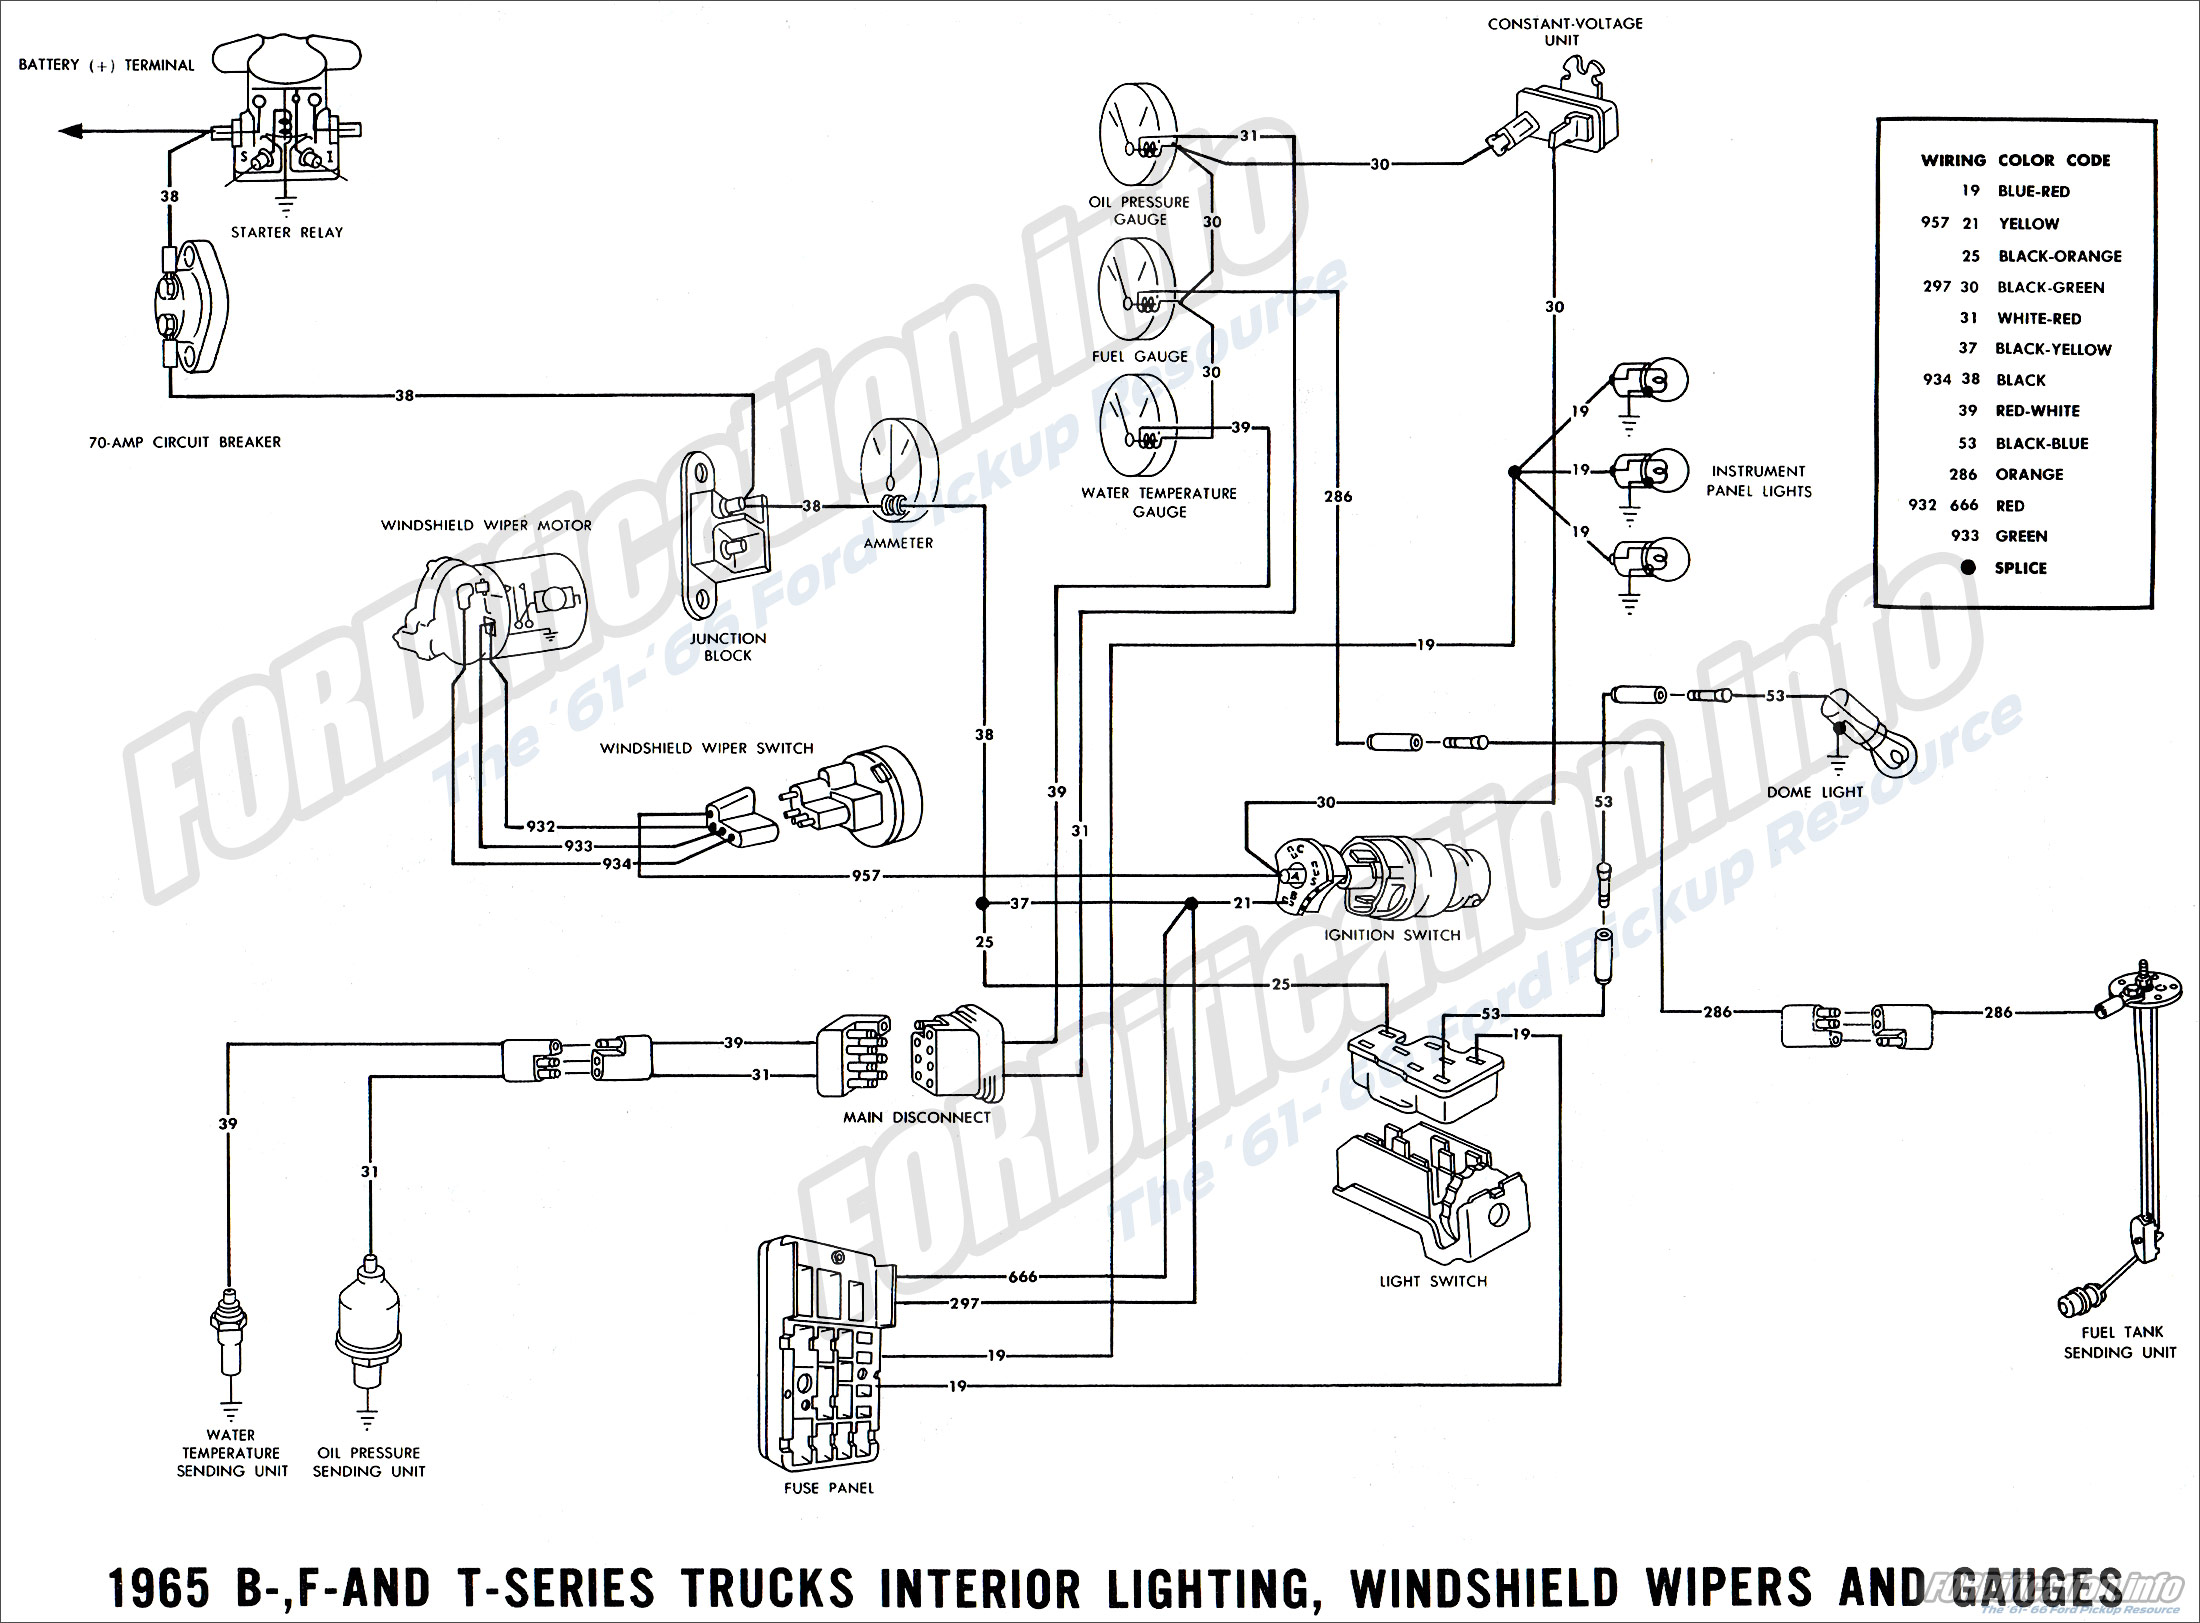 ford 4000 tractor ignition switch wiring diagram 5 way trailer plug for a 1964